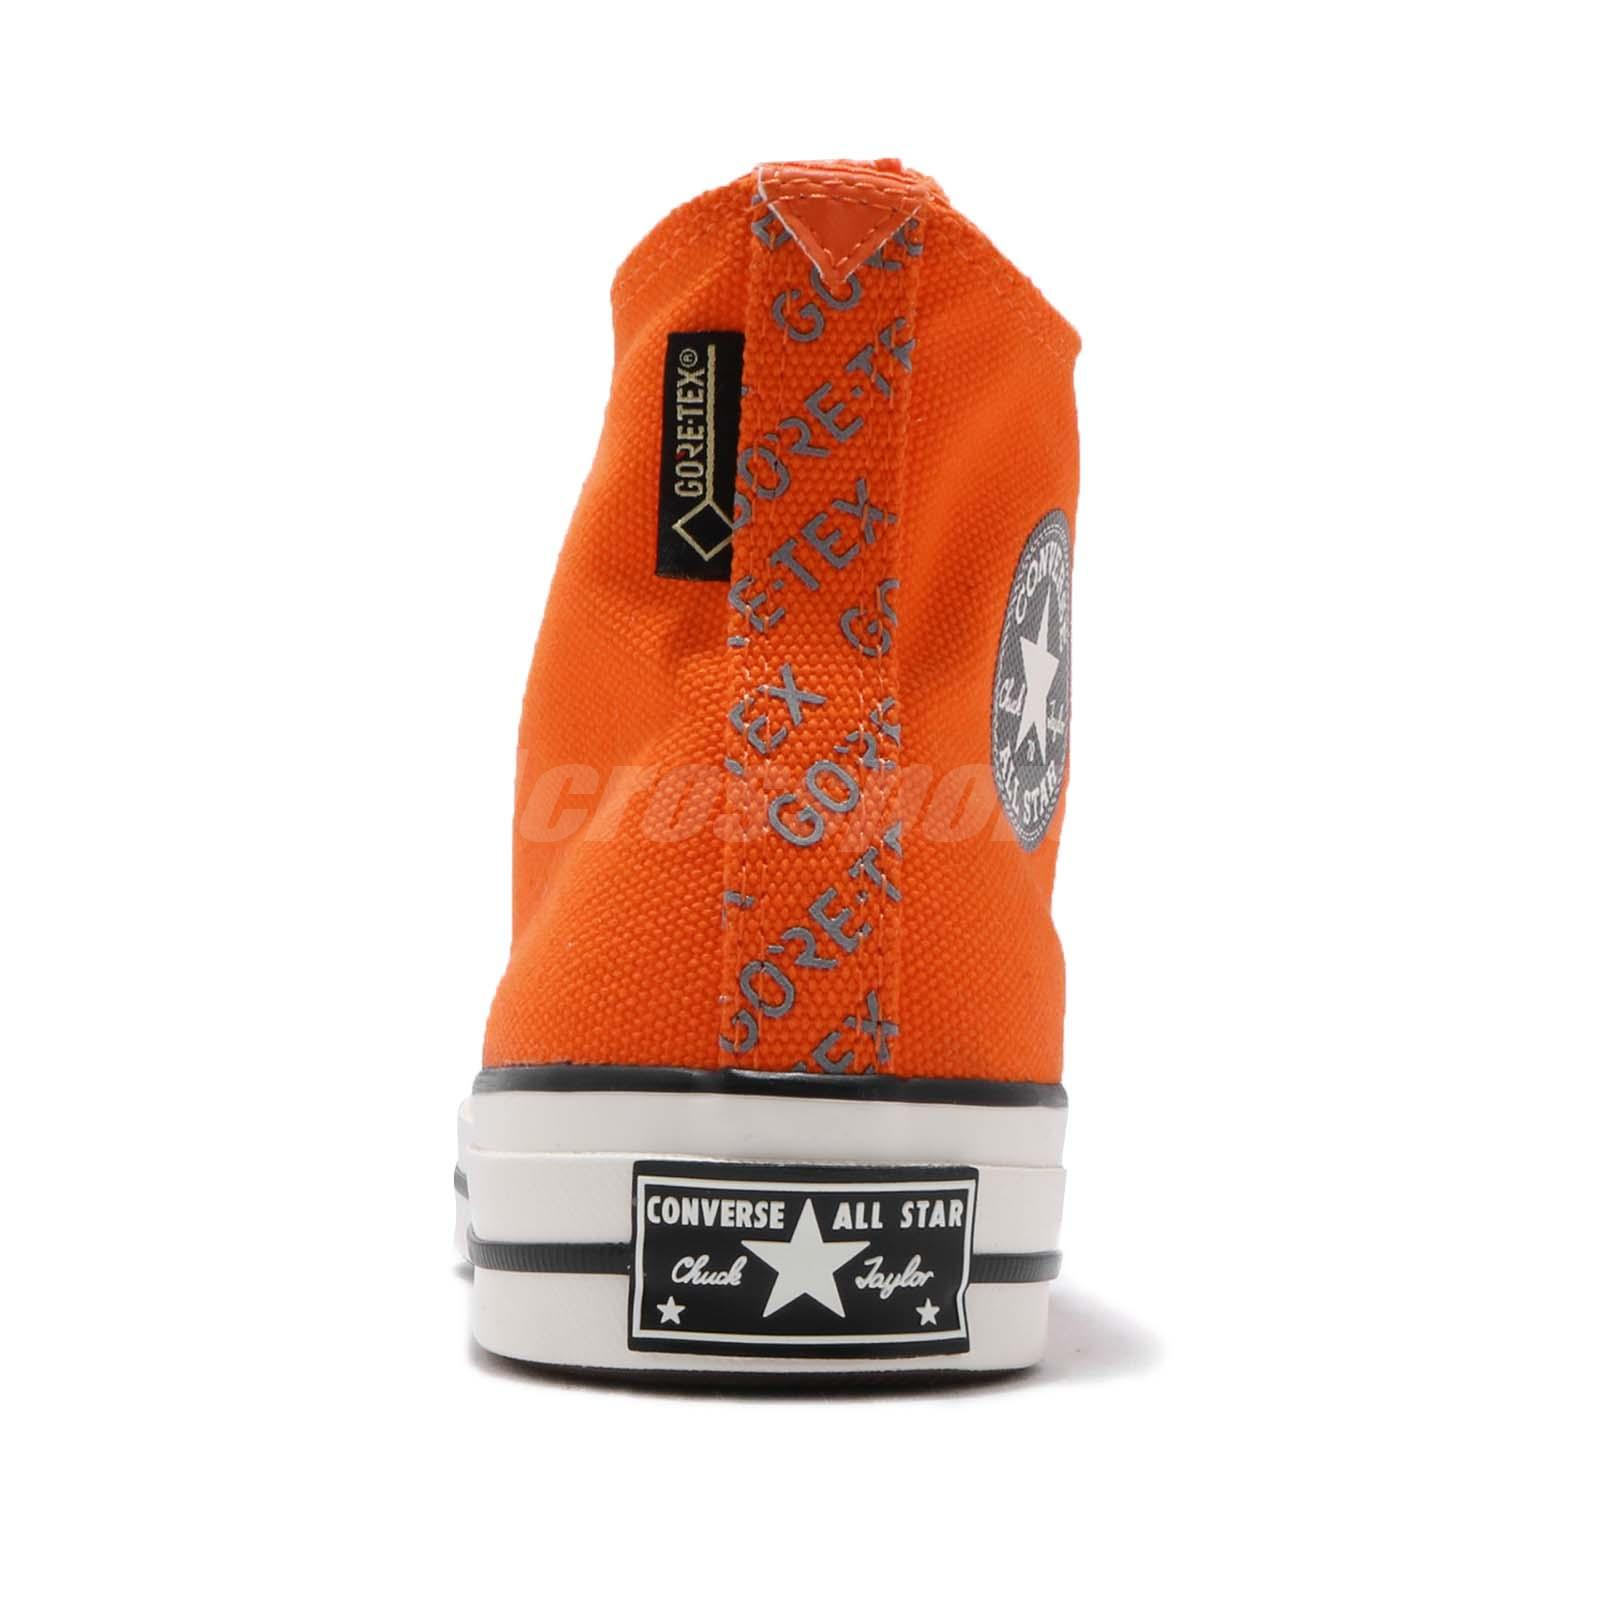 cf2904353c2 Converse First String Chuck Taylor All Star 70 Hi Gore-Tex Orange ...